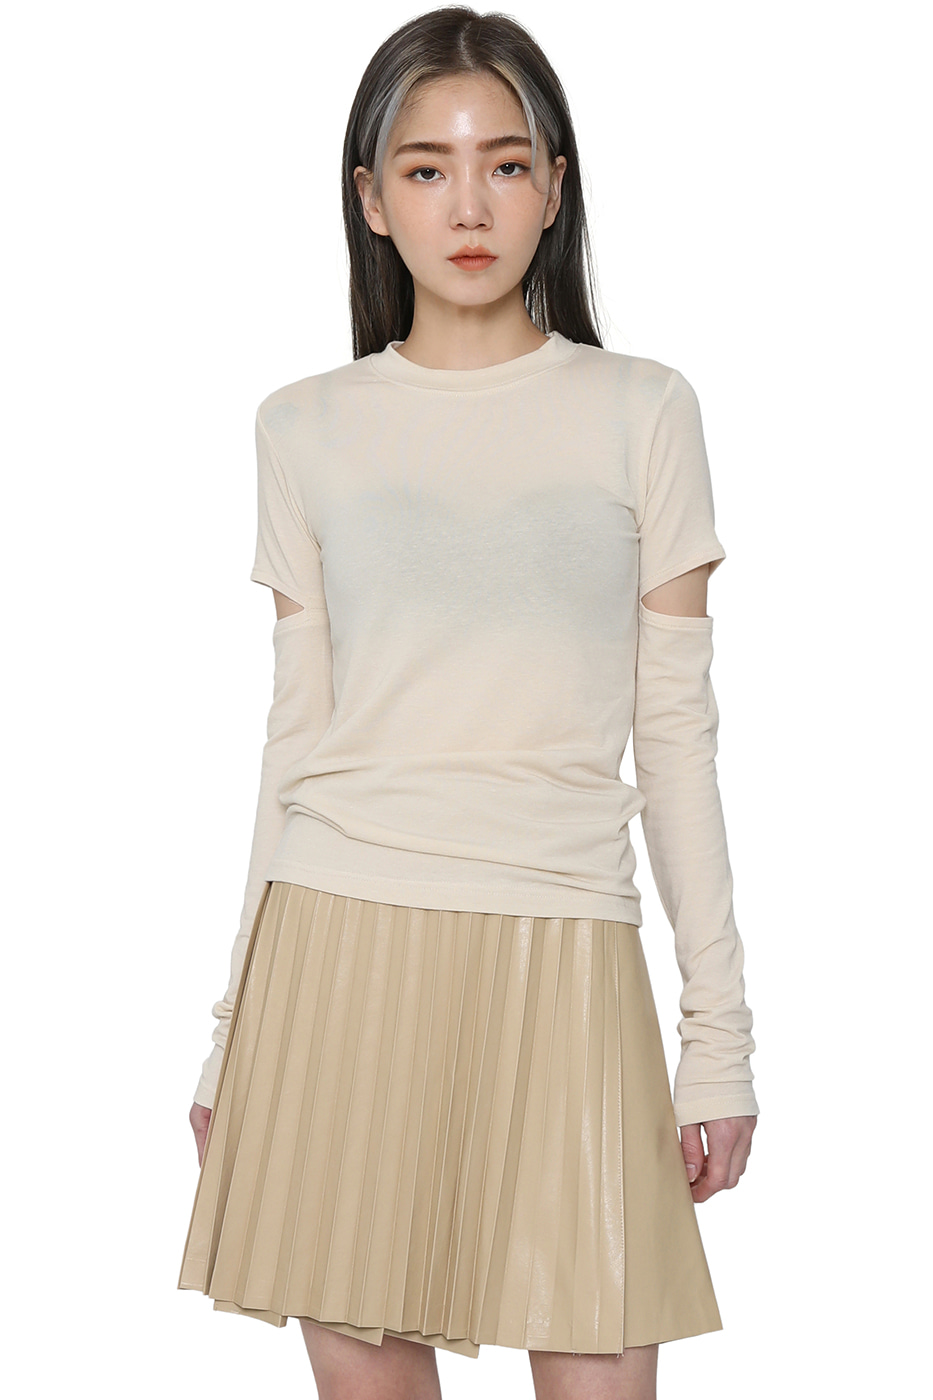 Face cut-out slim top